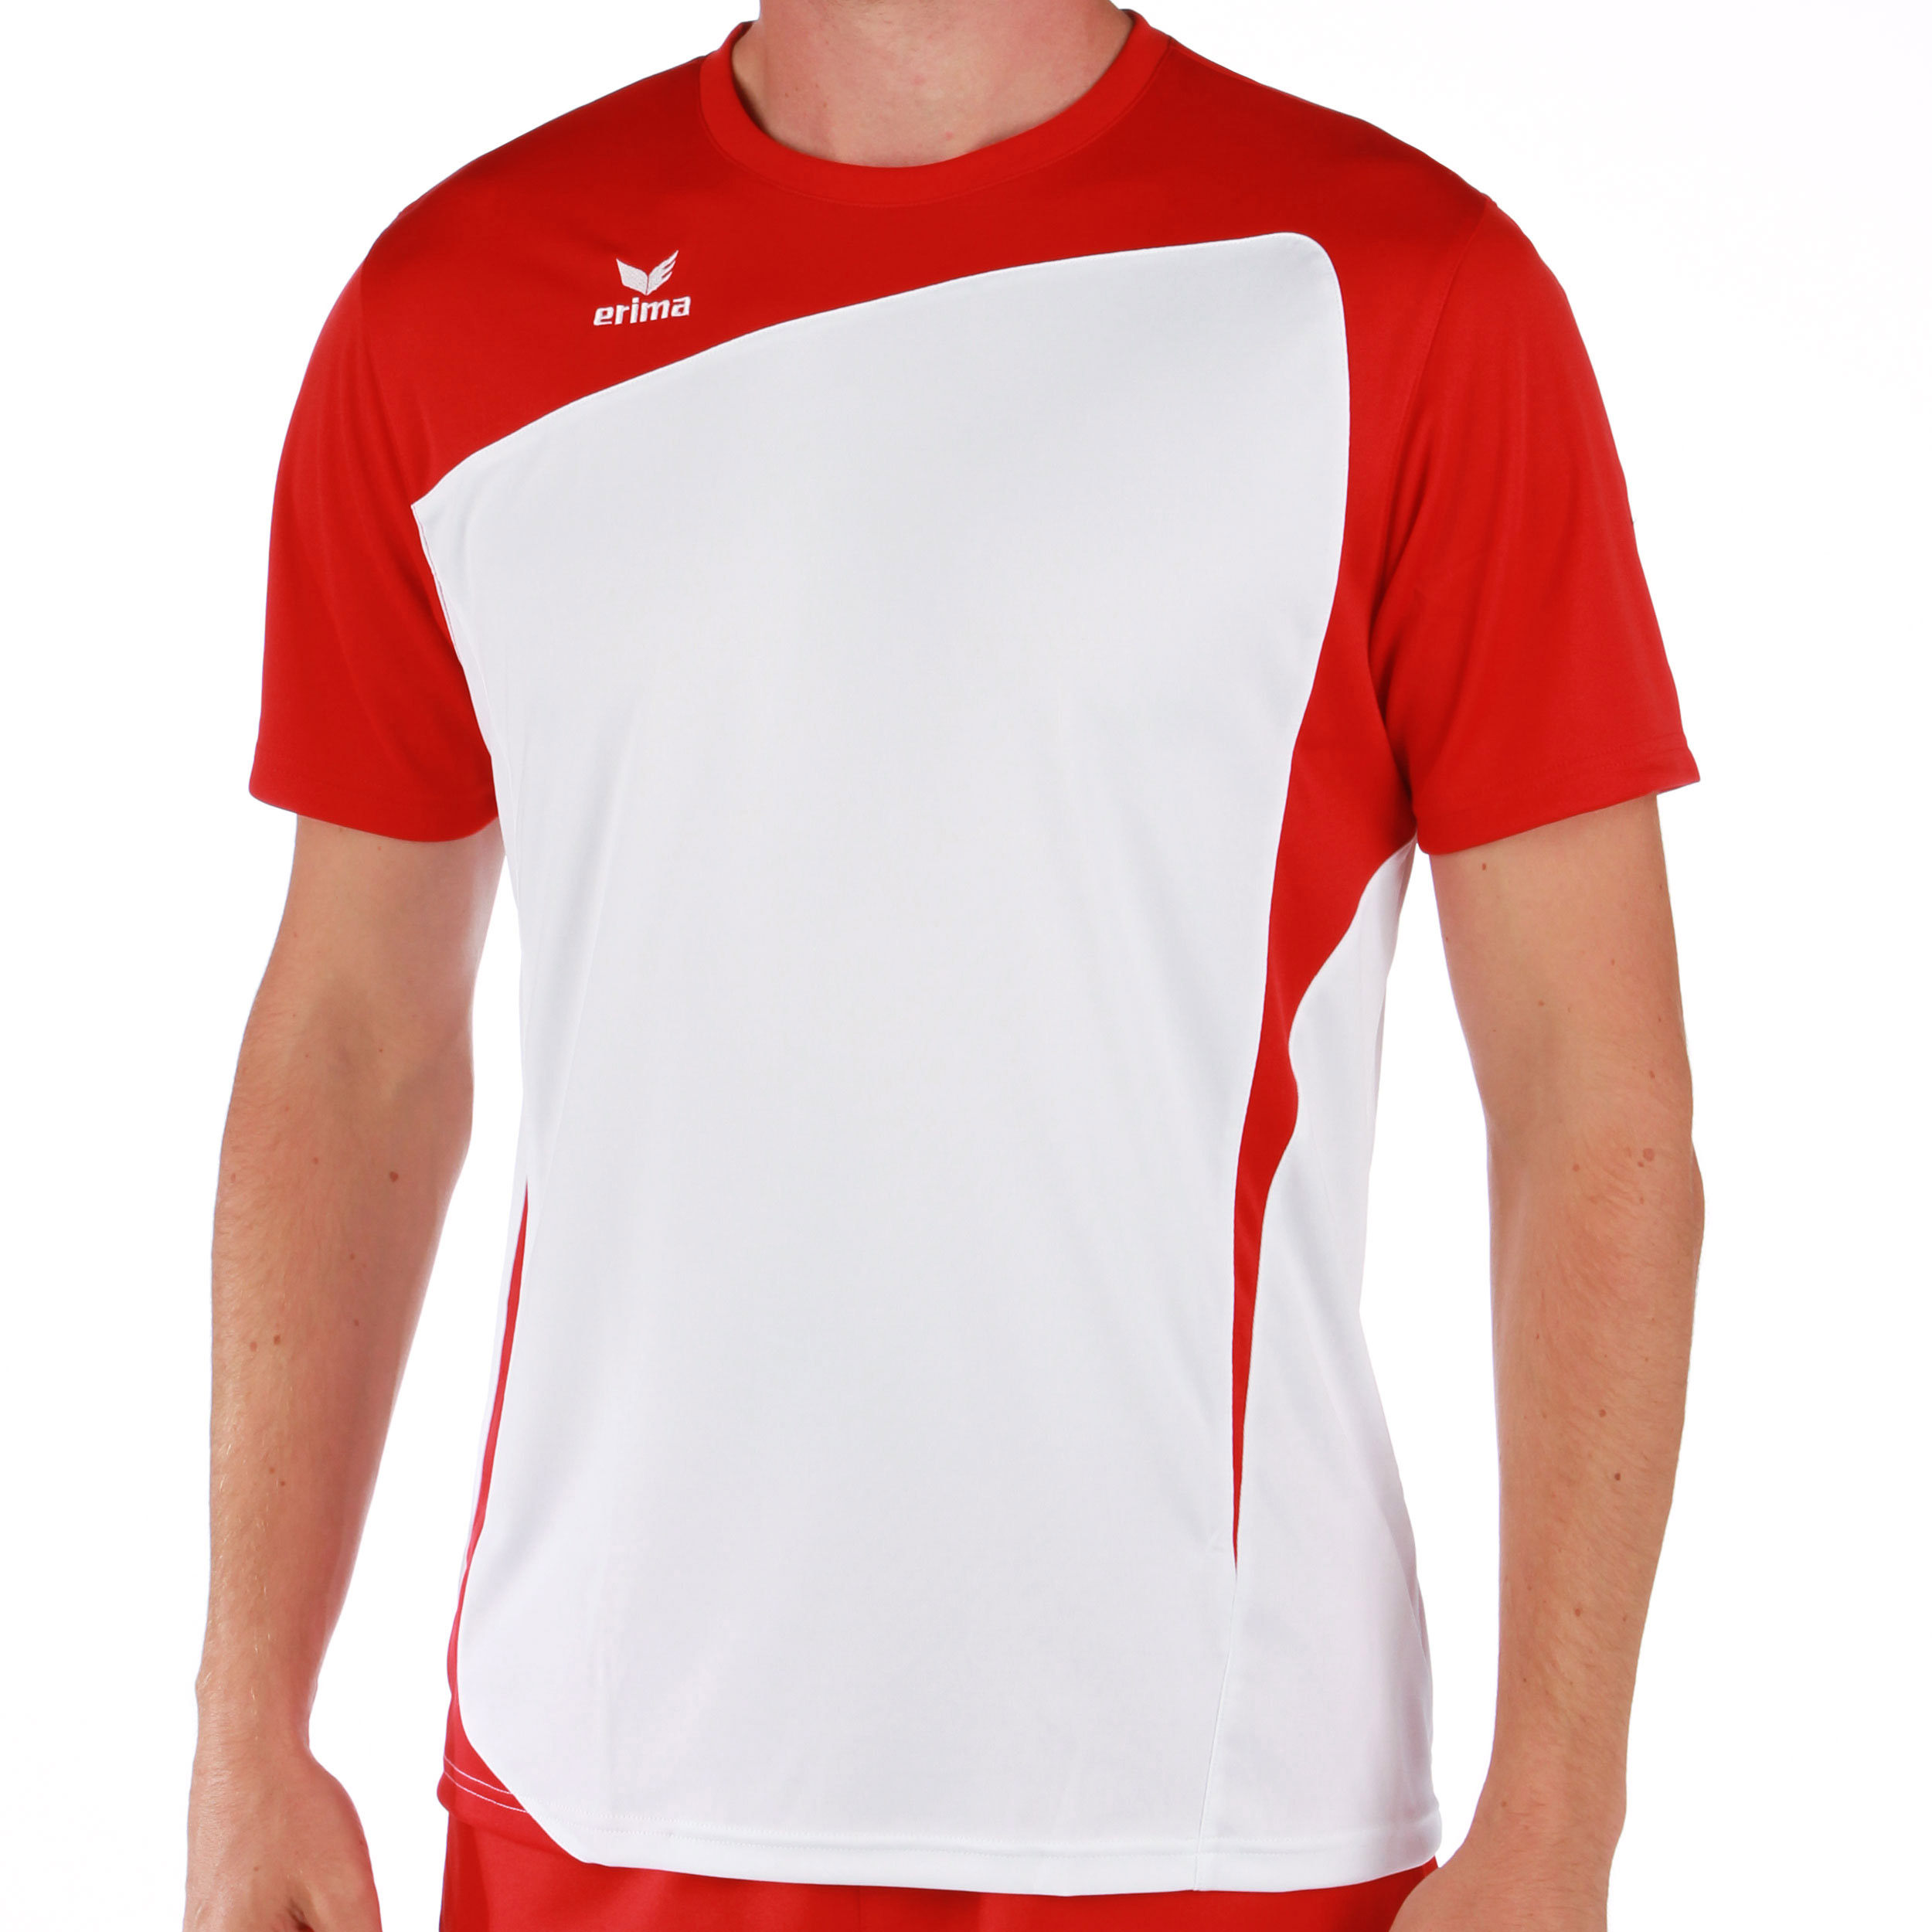 Erima tennis apperal - - buy online at Tennis-